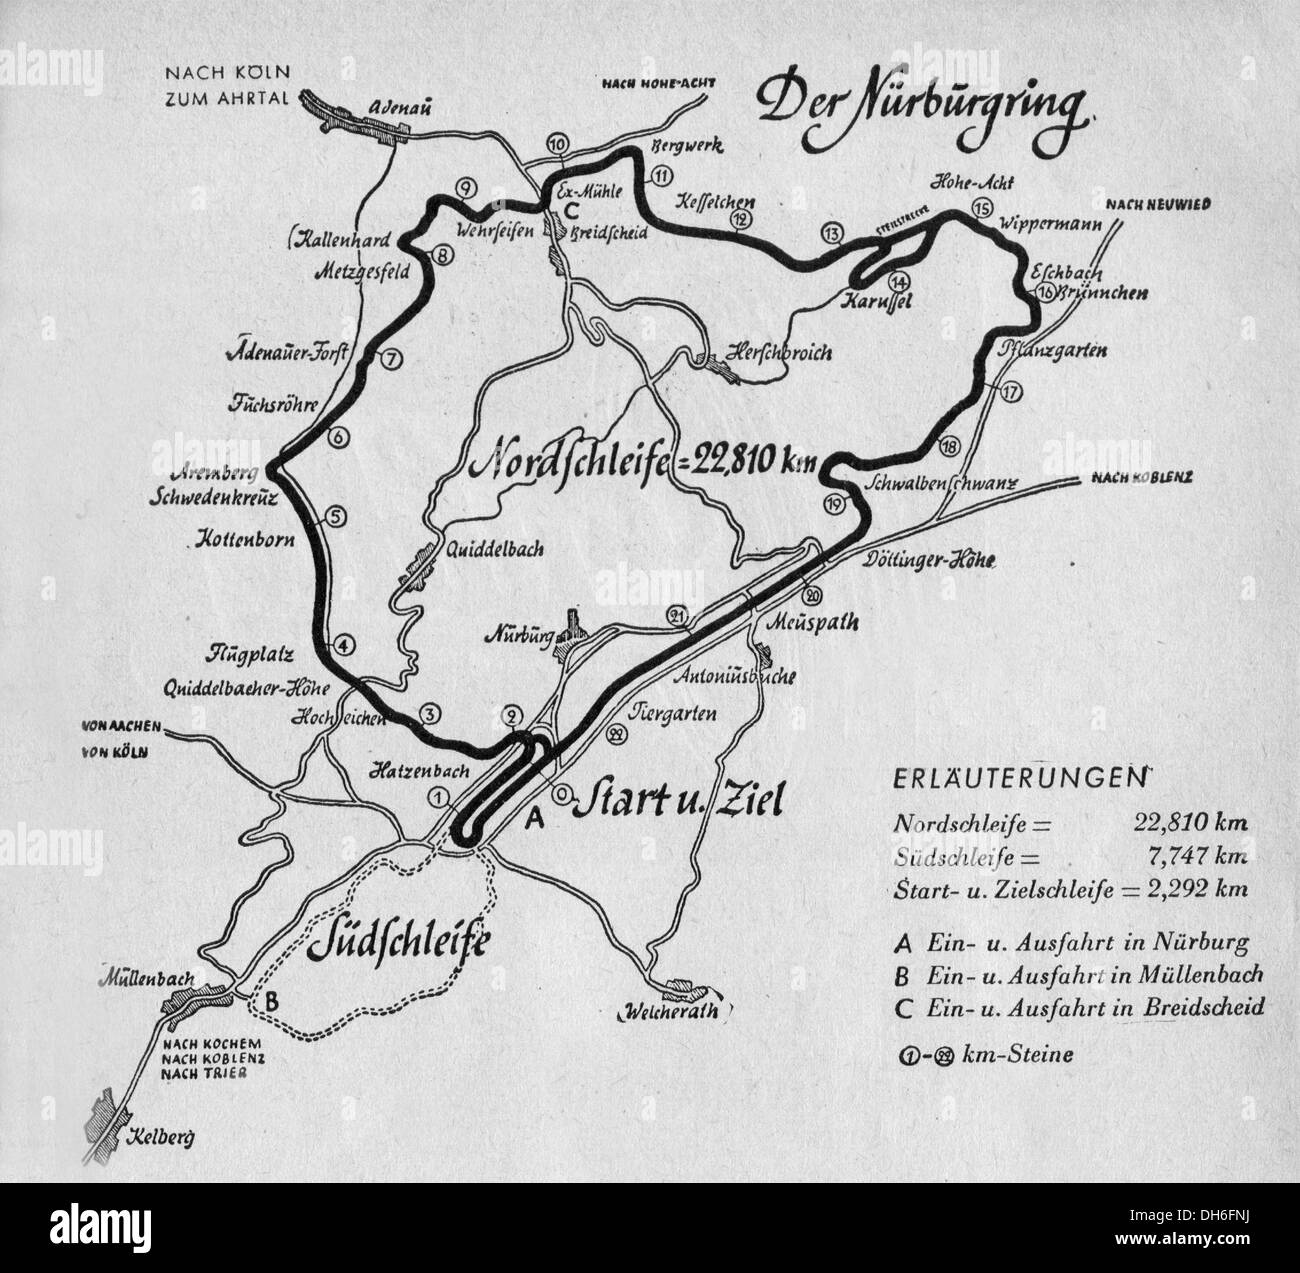 A Map Of The Nurburgring Circuit From The S Germany Stock - Germany map nurburgring